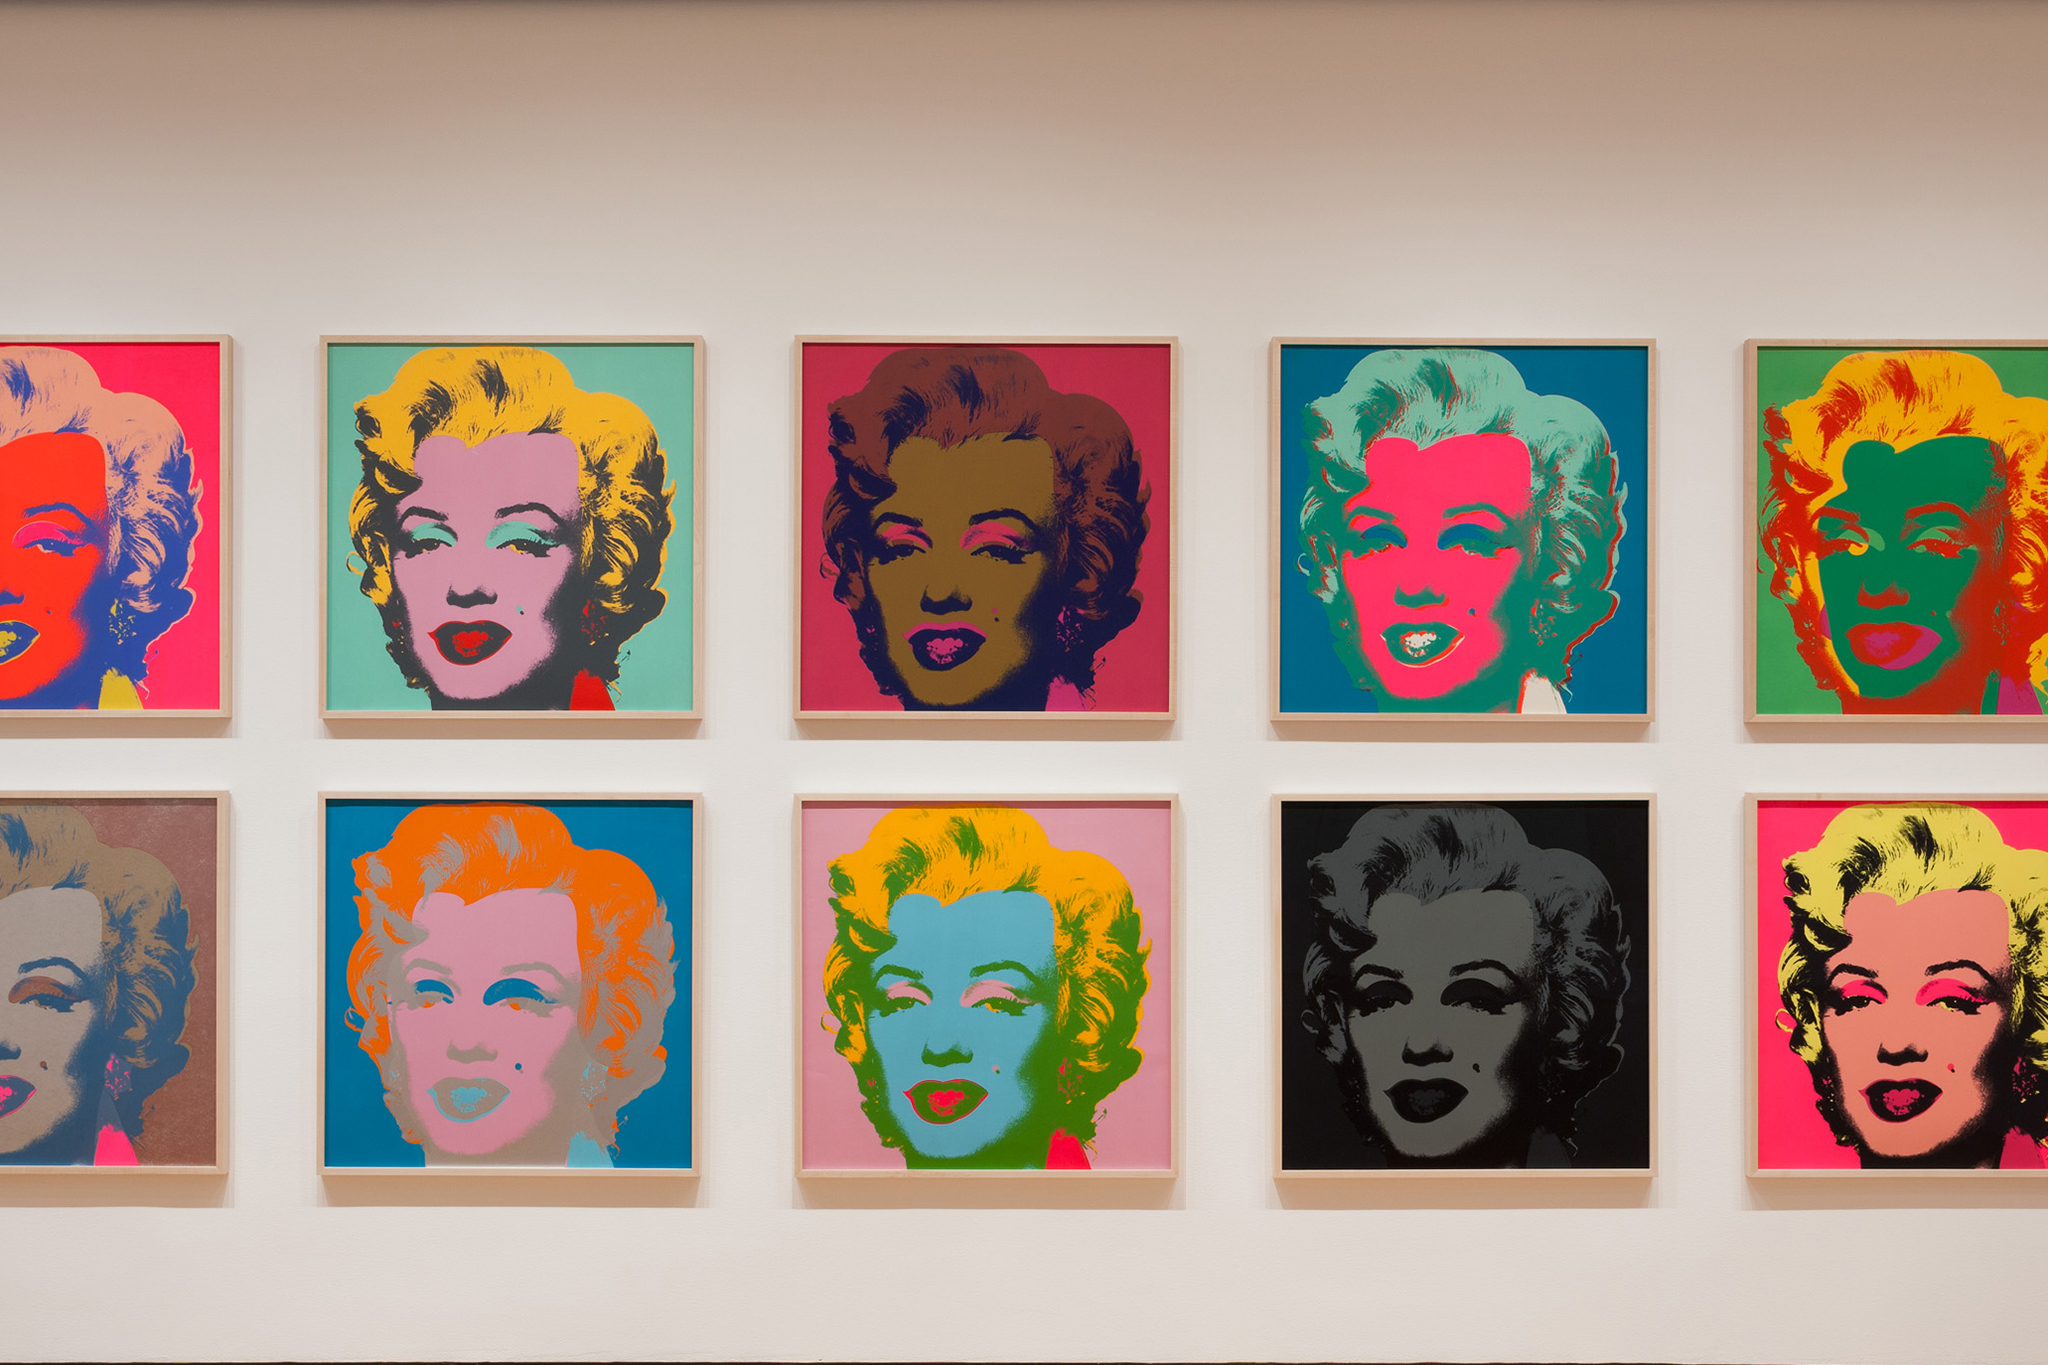 A fascinating look at the early years of Andy Warhol